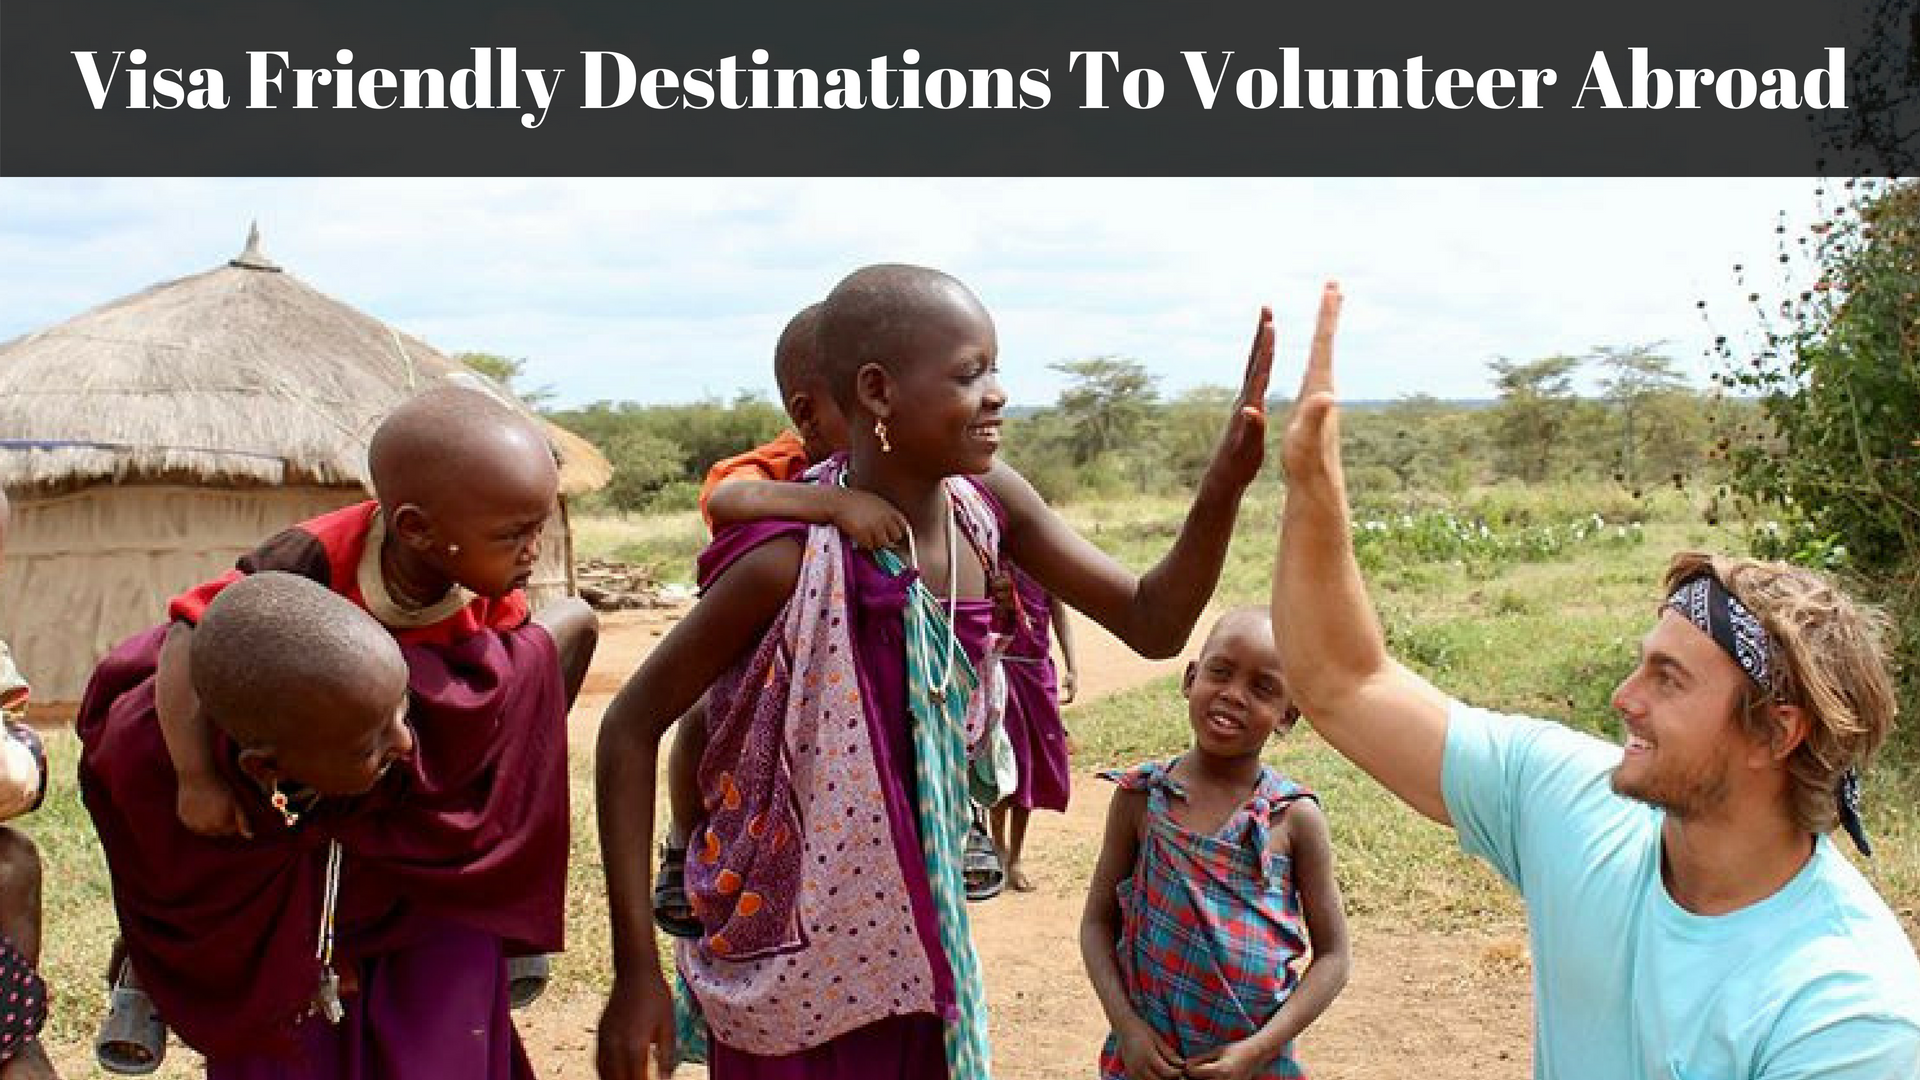 9 Visa Friendly Destinations For Volunteering Abroad